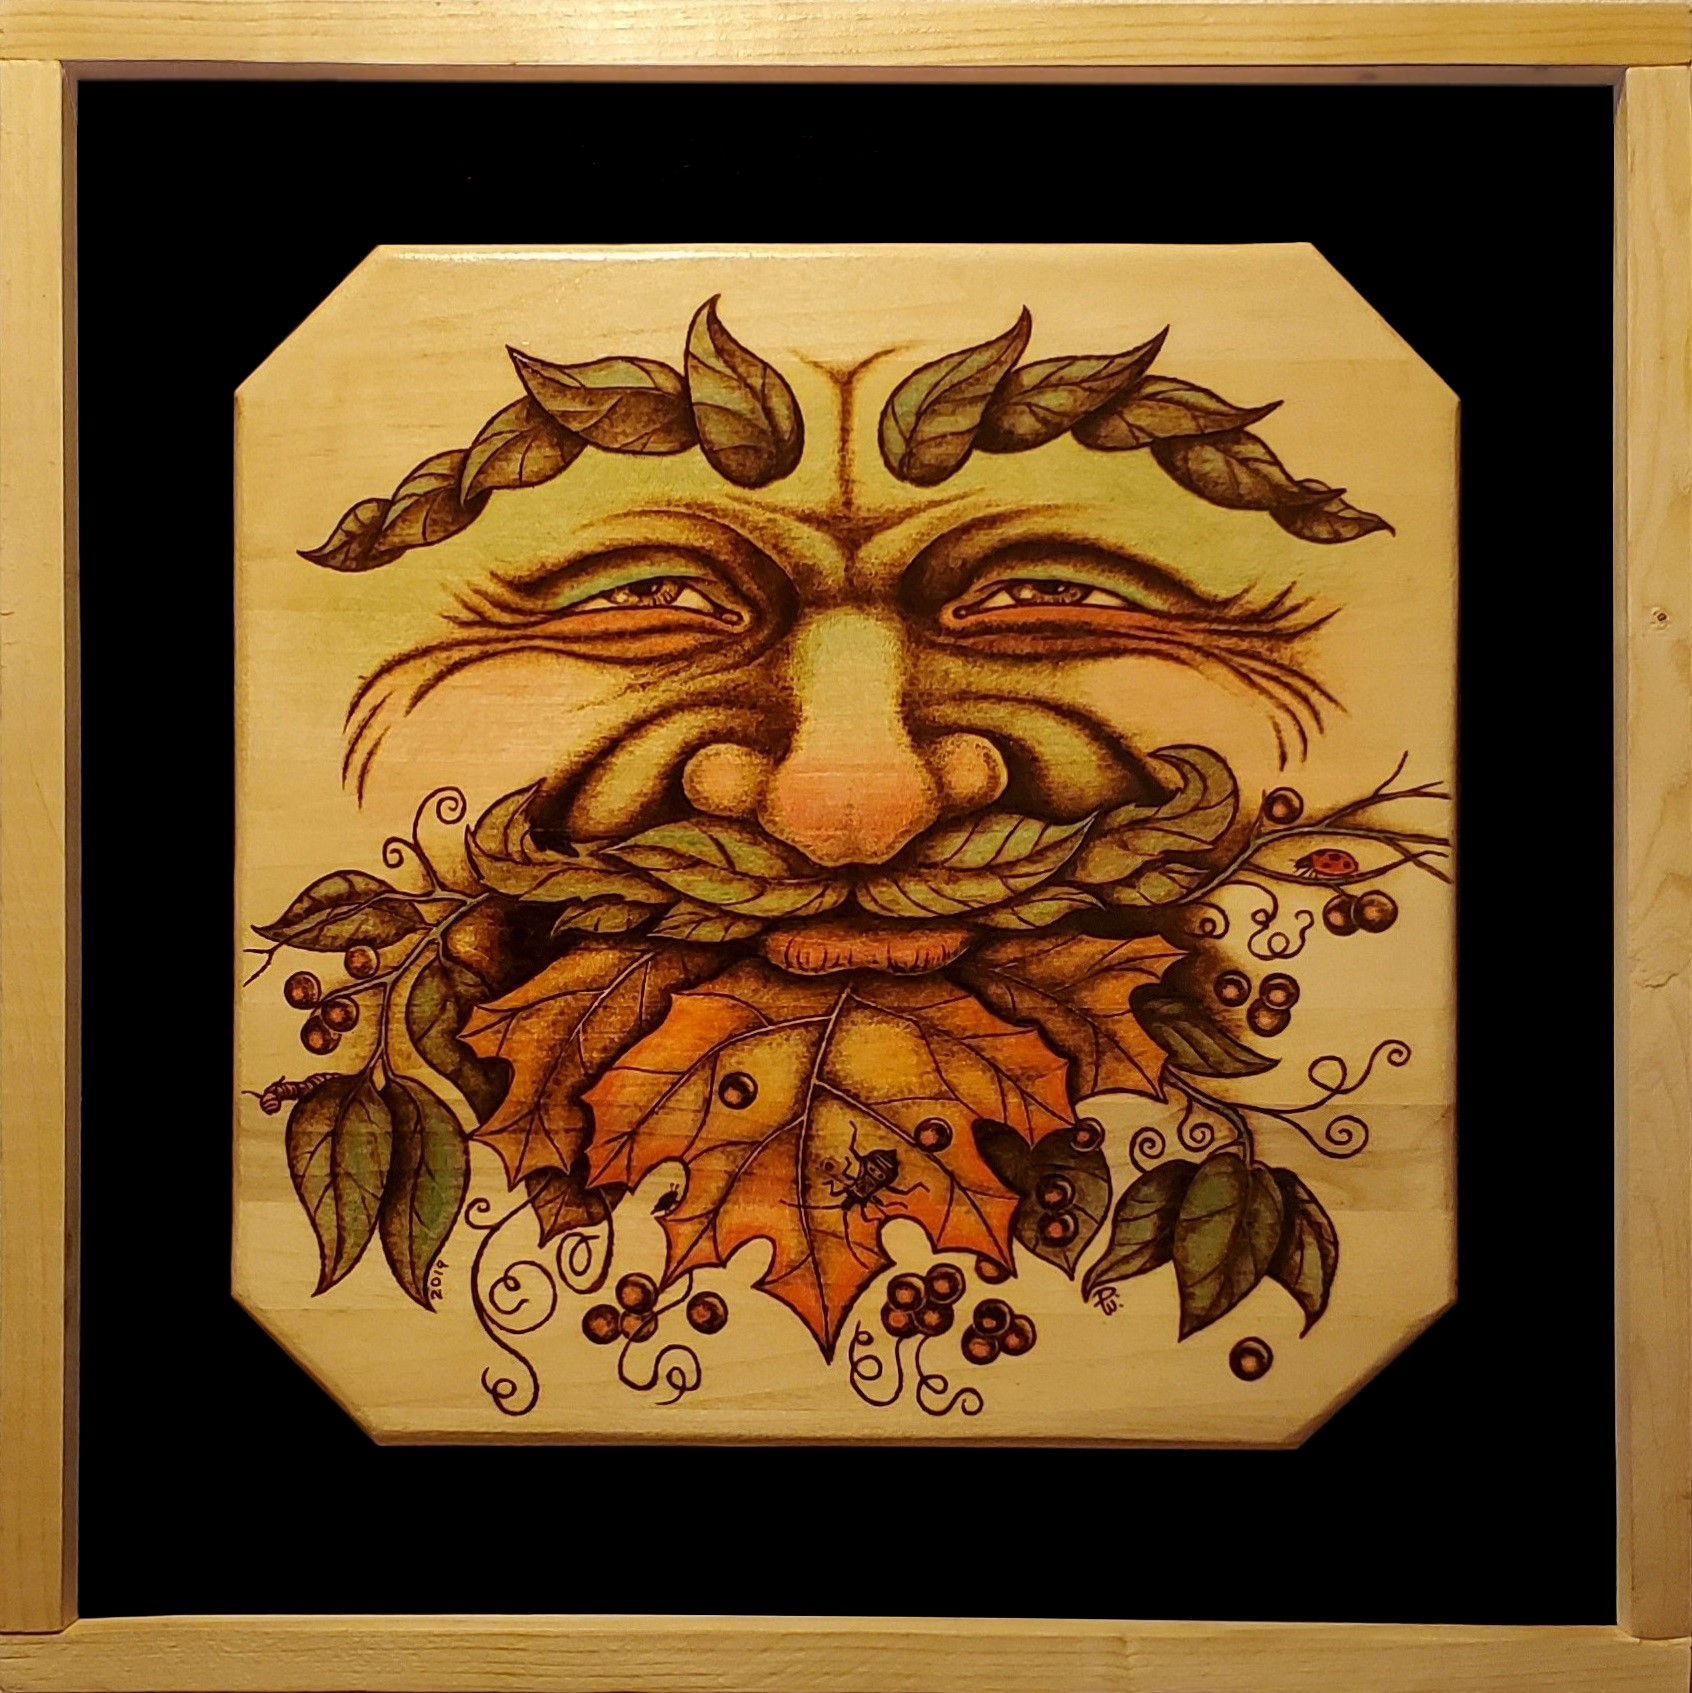 Woodburned image of the European greenman motif